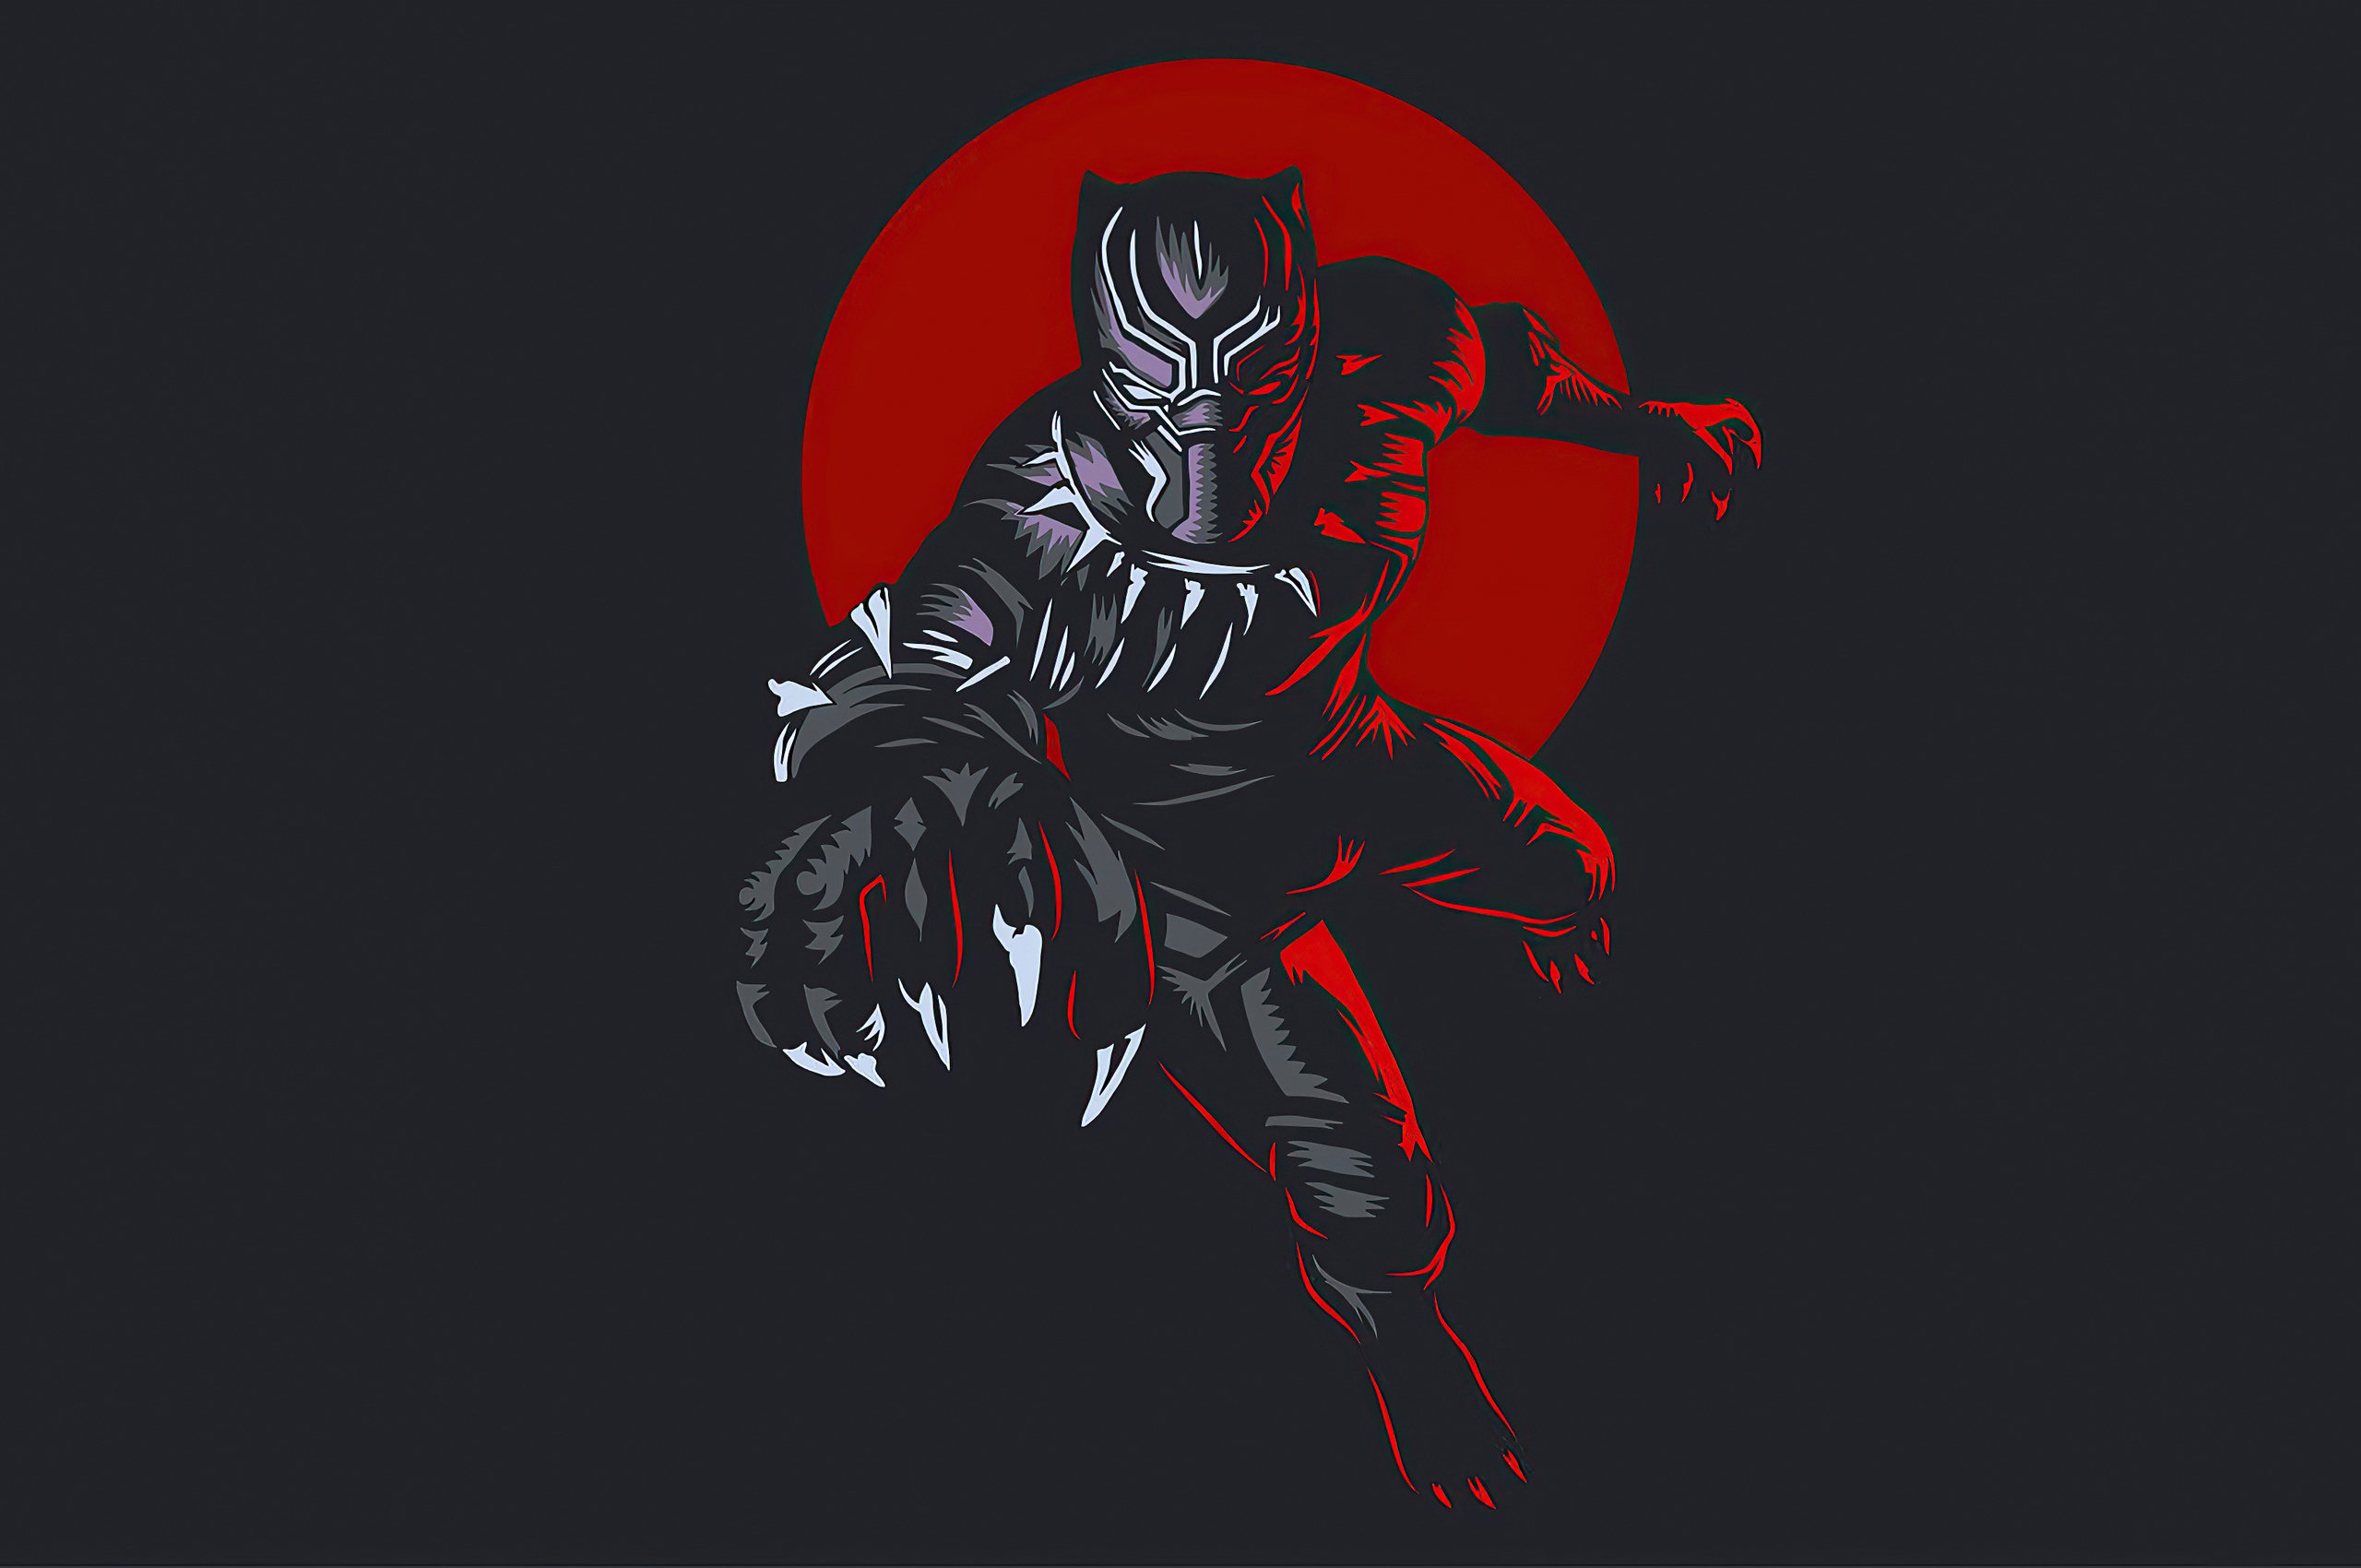 2560x1700 Black Panther Wakanda King Chromebook Pixel Hd 4k Wallpapers Images Backgrounds Photos And Pictures